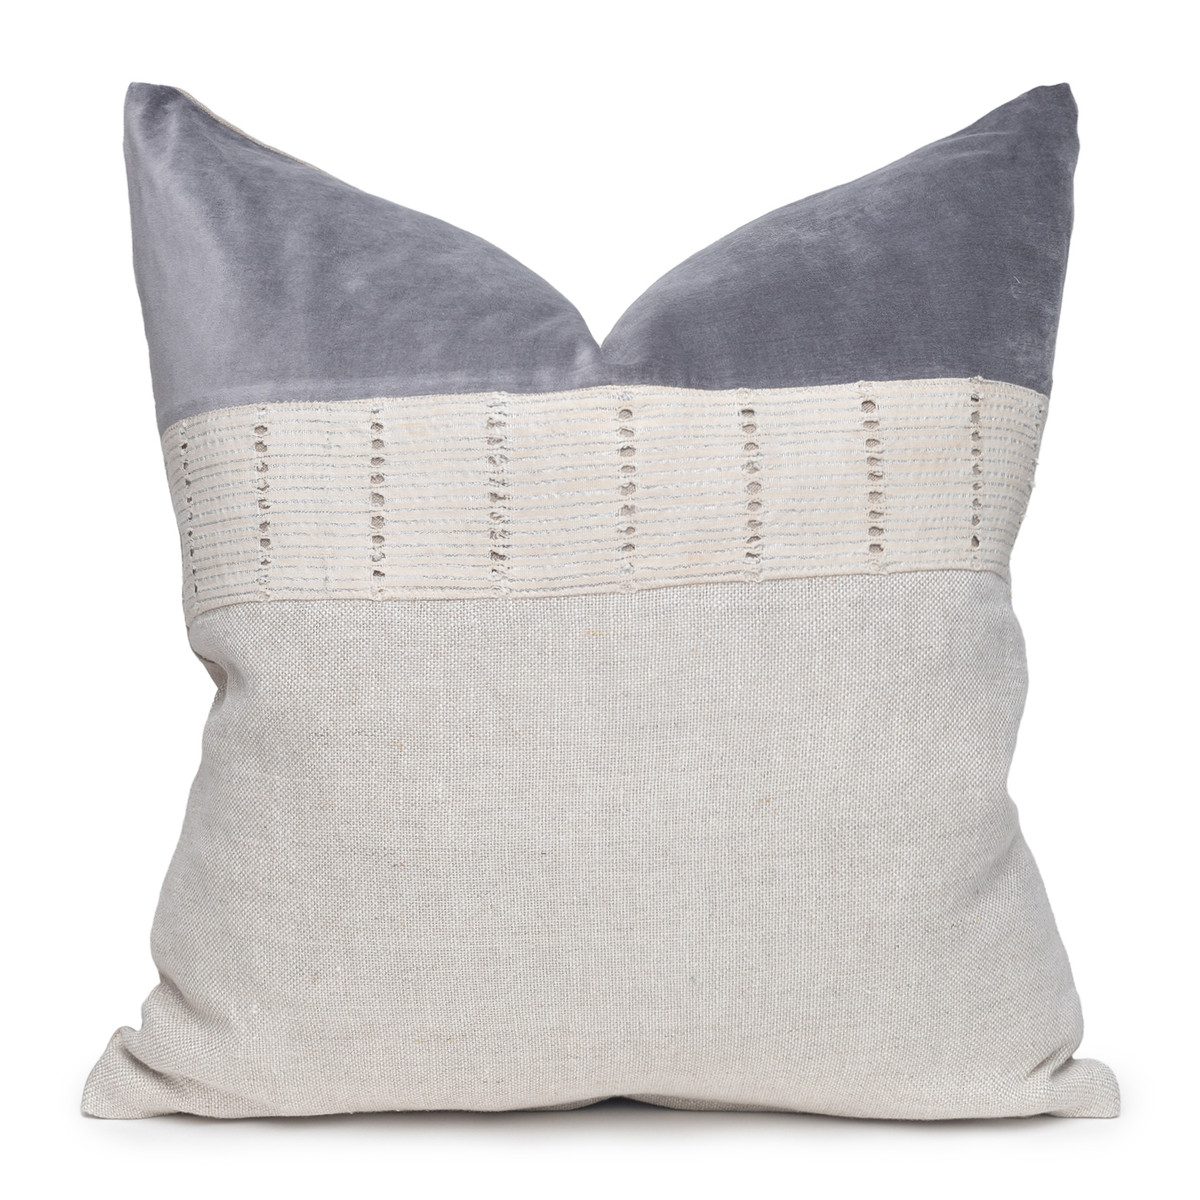 Angel Luxe Vintage Pillow with African Aso Oke Textiles and 100% Eco-friendly Topanga linen in Natural & Cotton Velvet- 22- Front View